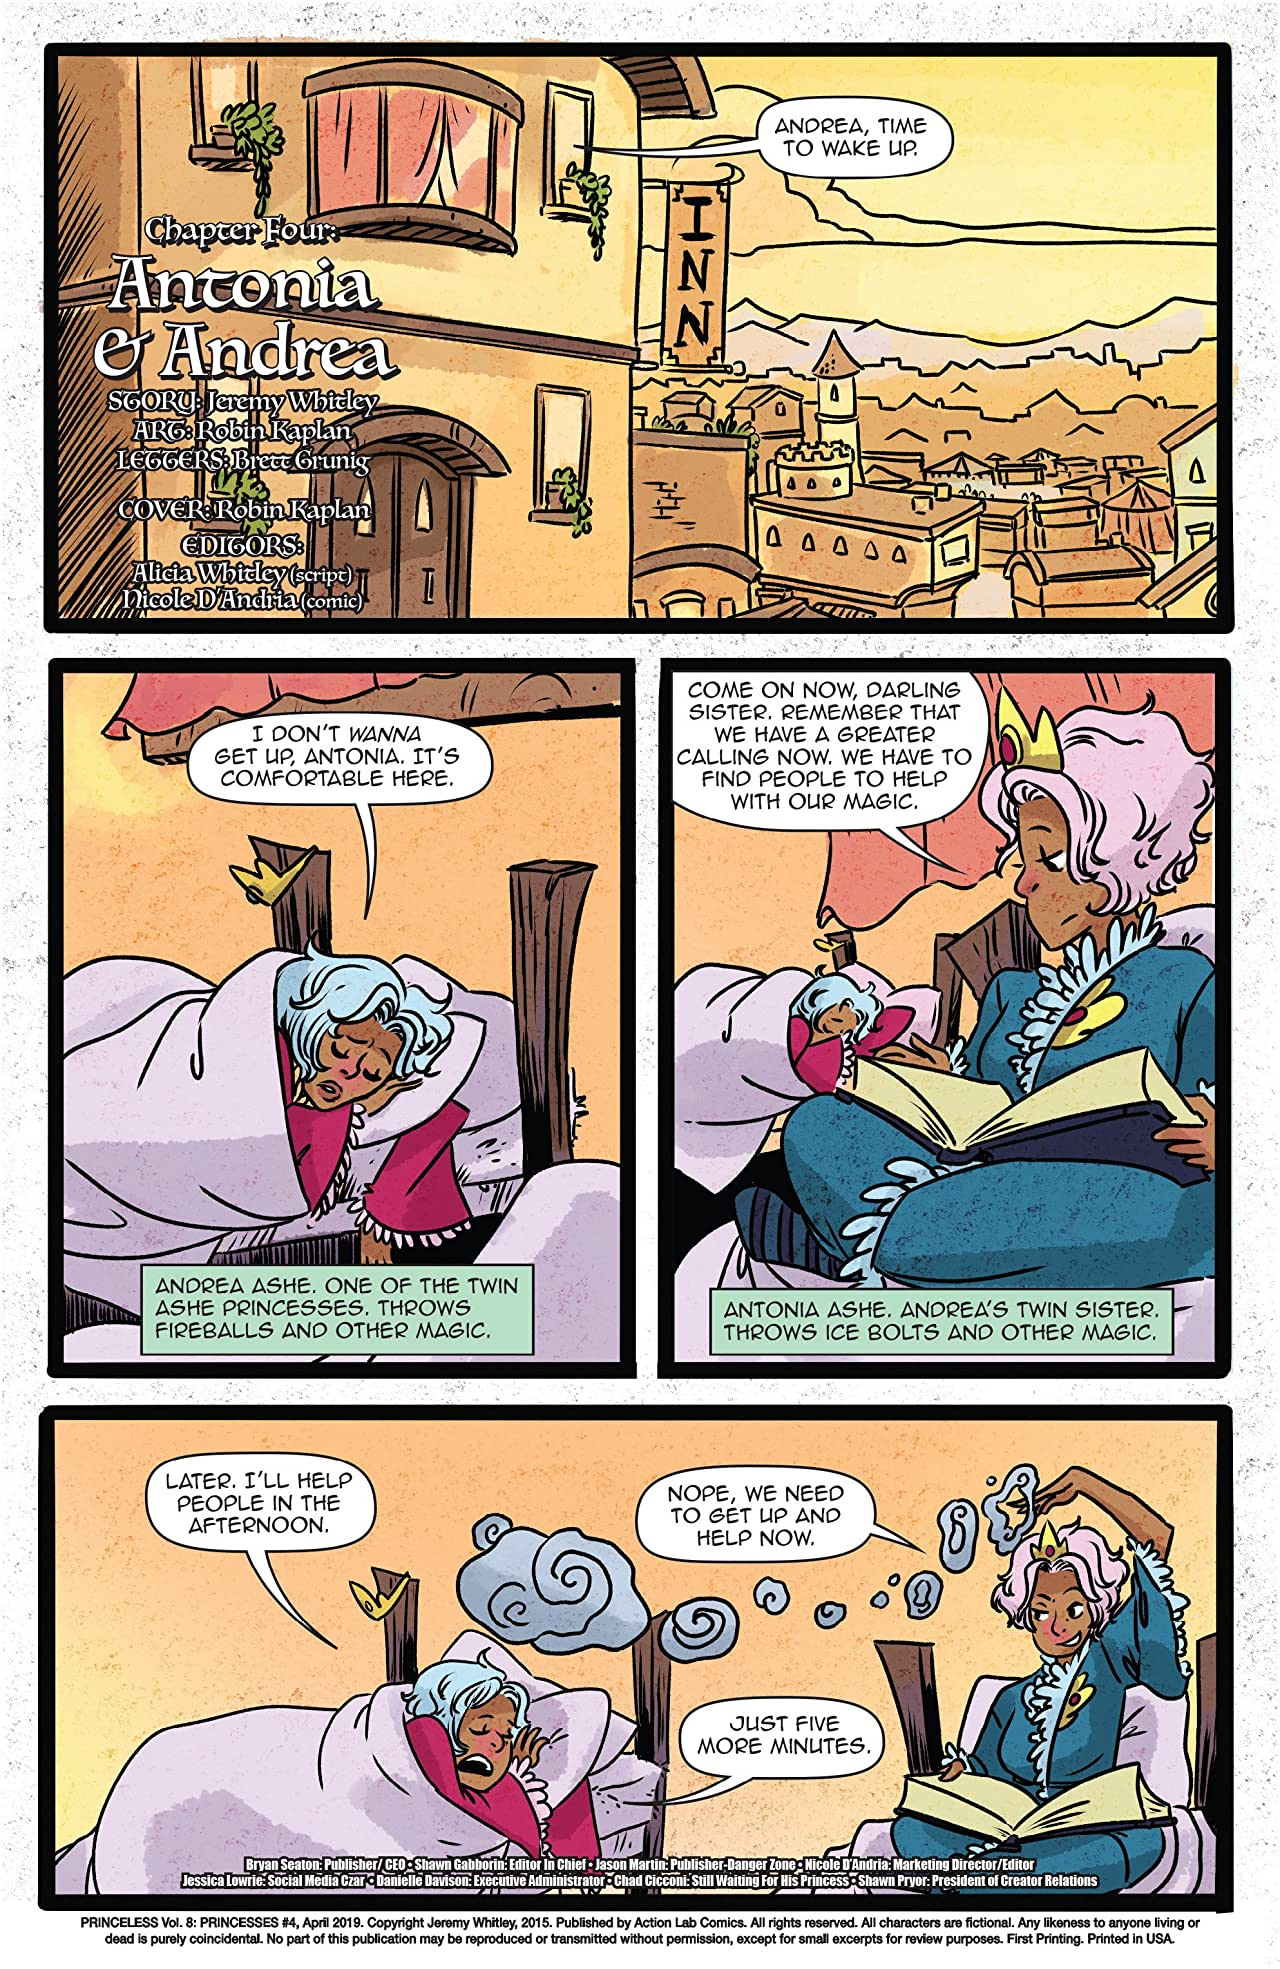 Princeless Book 8: Princesses #4